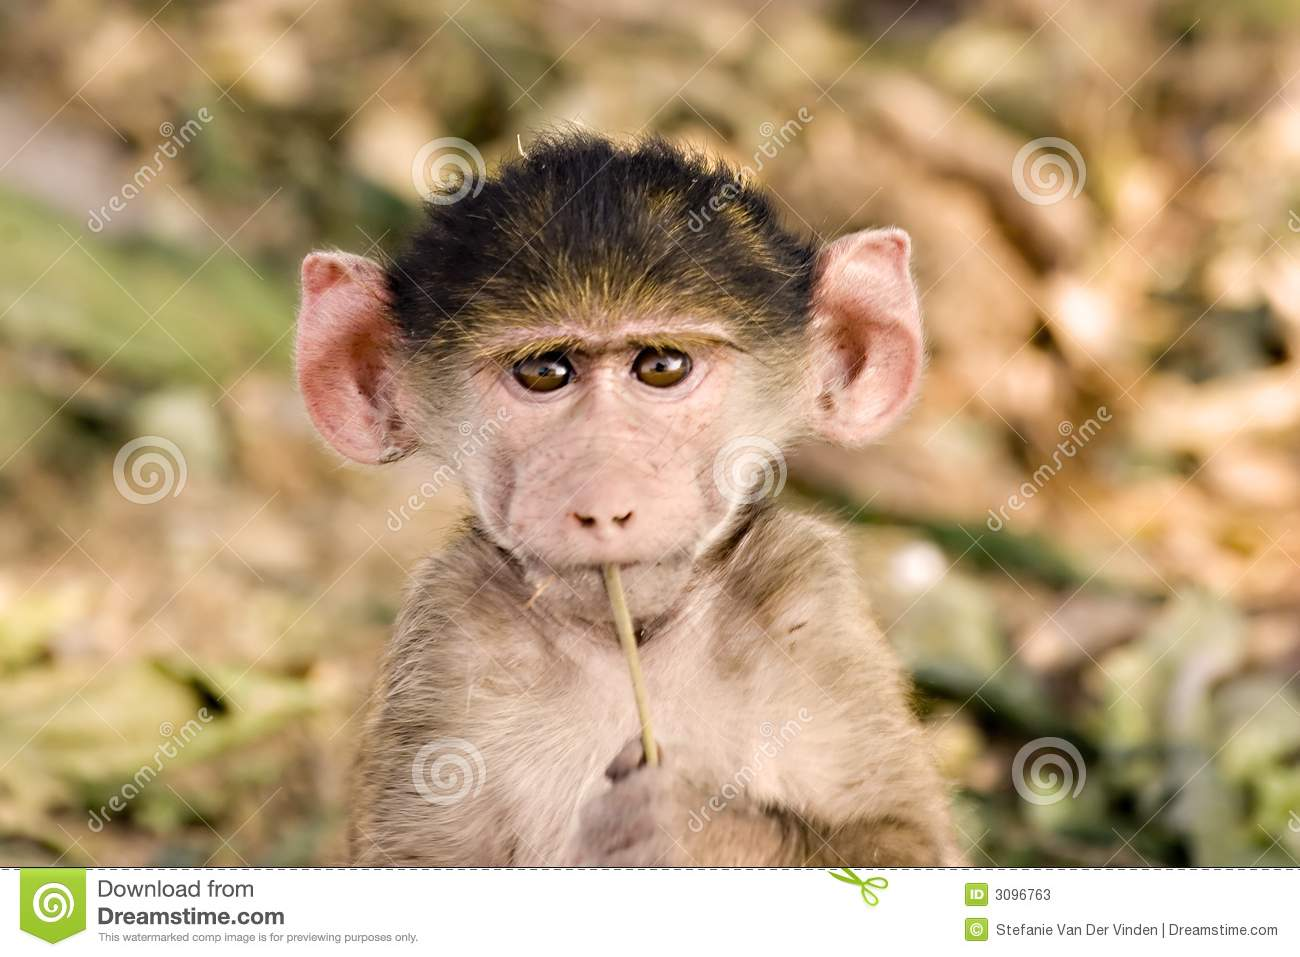 Baby Baboon Stock Photos - Image: 3096763